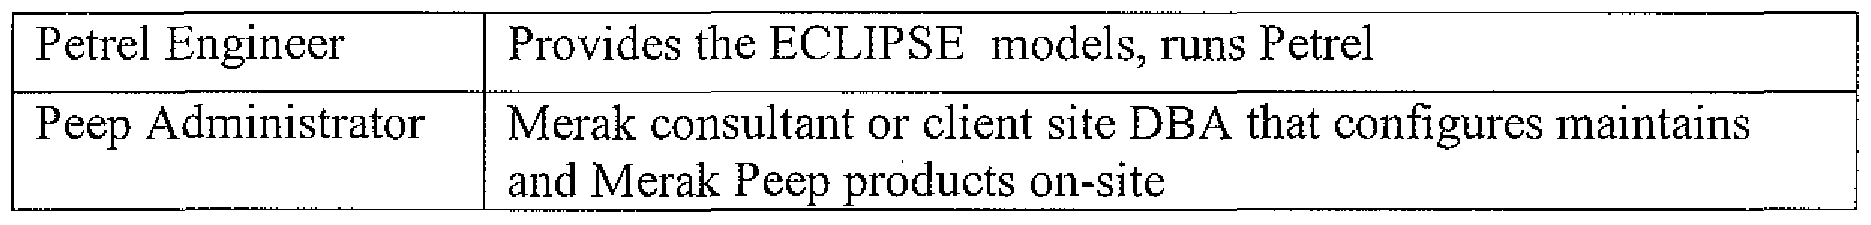 WO2008028090A2 - Method for economic valuation in seismic to